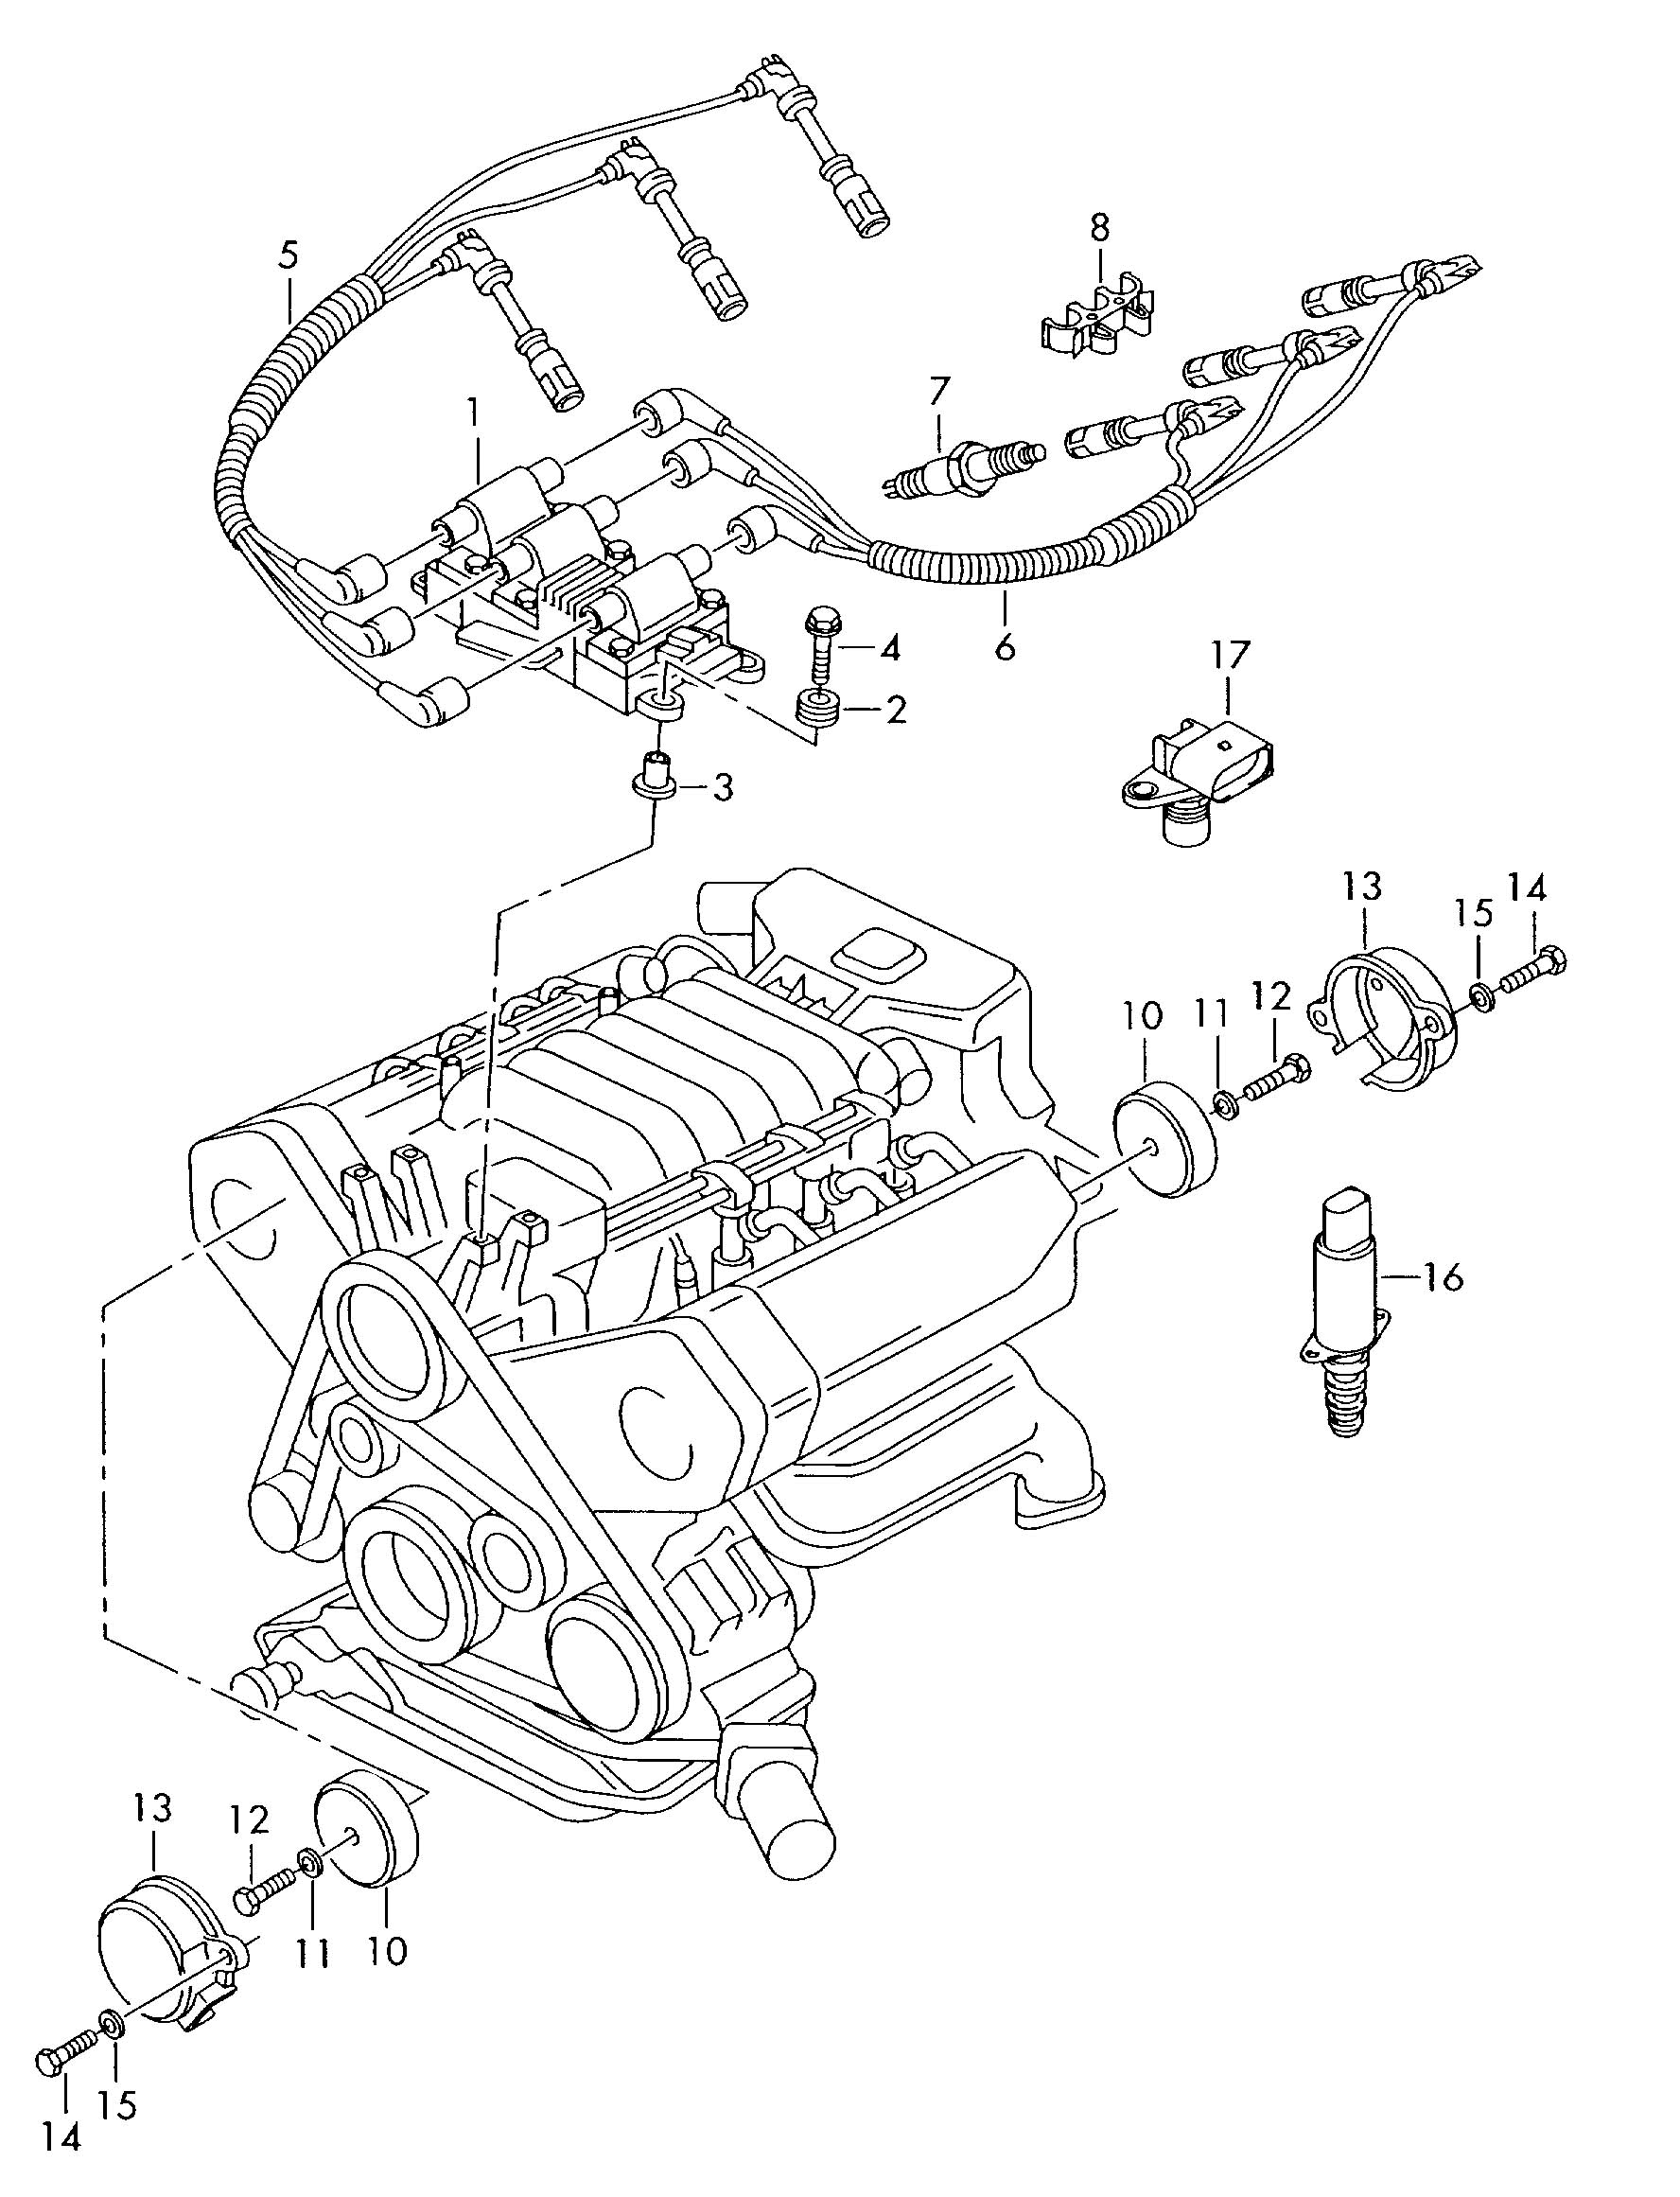 Volkswagen Passat Ignition Coil With Spark Plug Connector